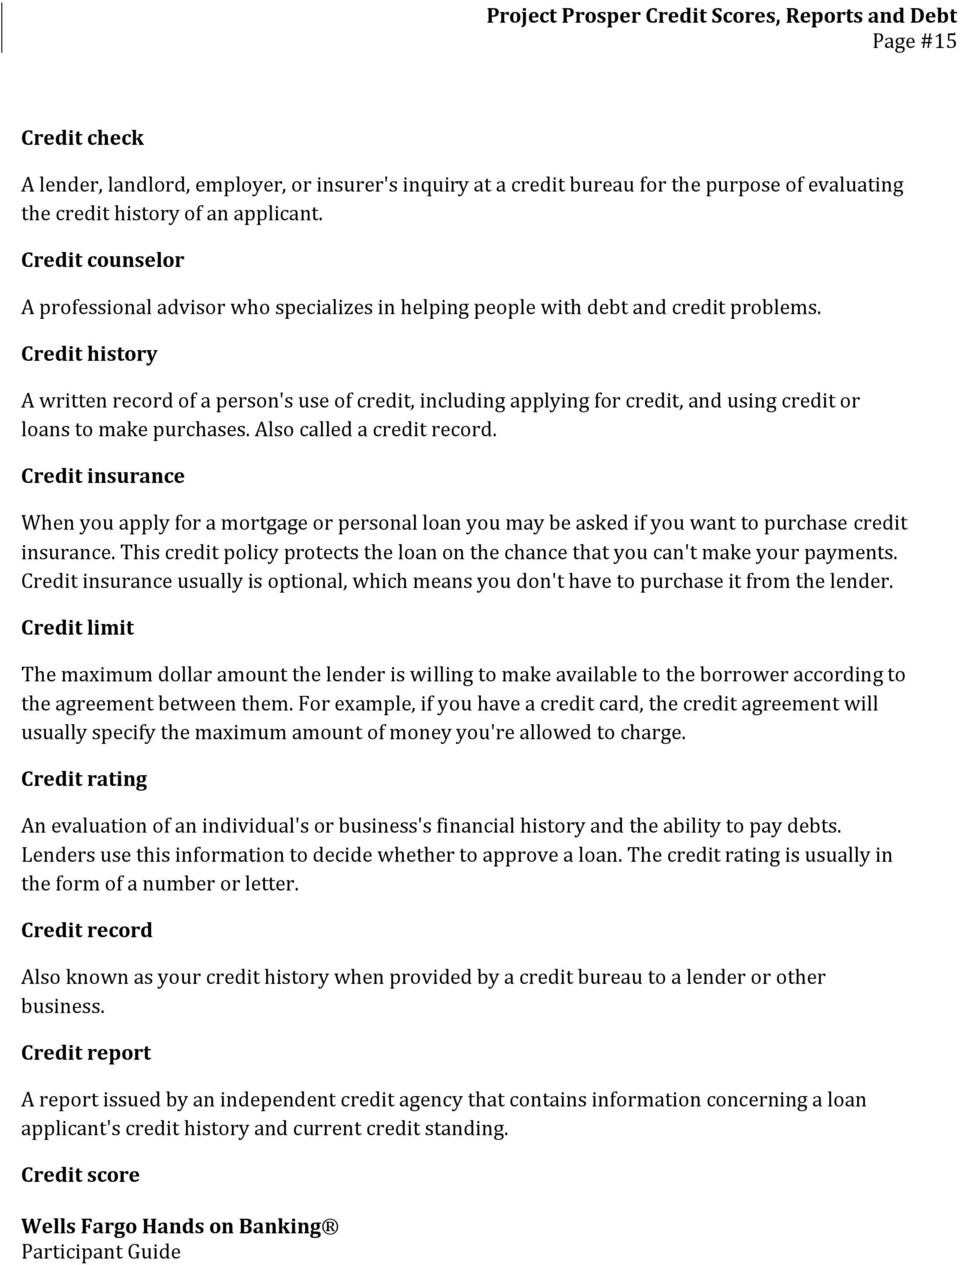 Credit history A written record of a person's use of credit, including applying for credit, and using credit or loans to make purchases. Also called a credit record.